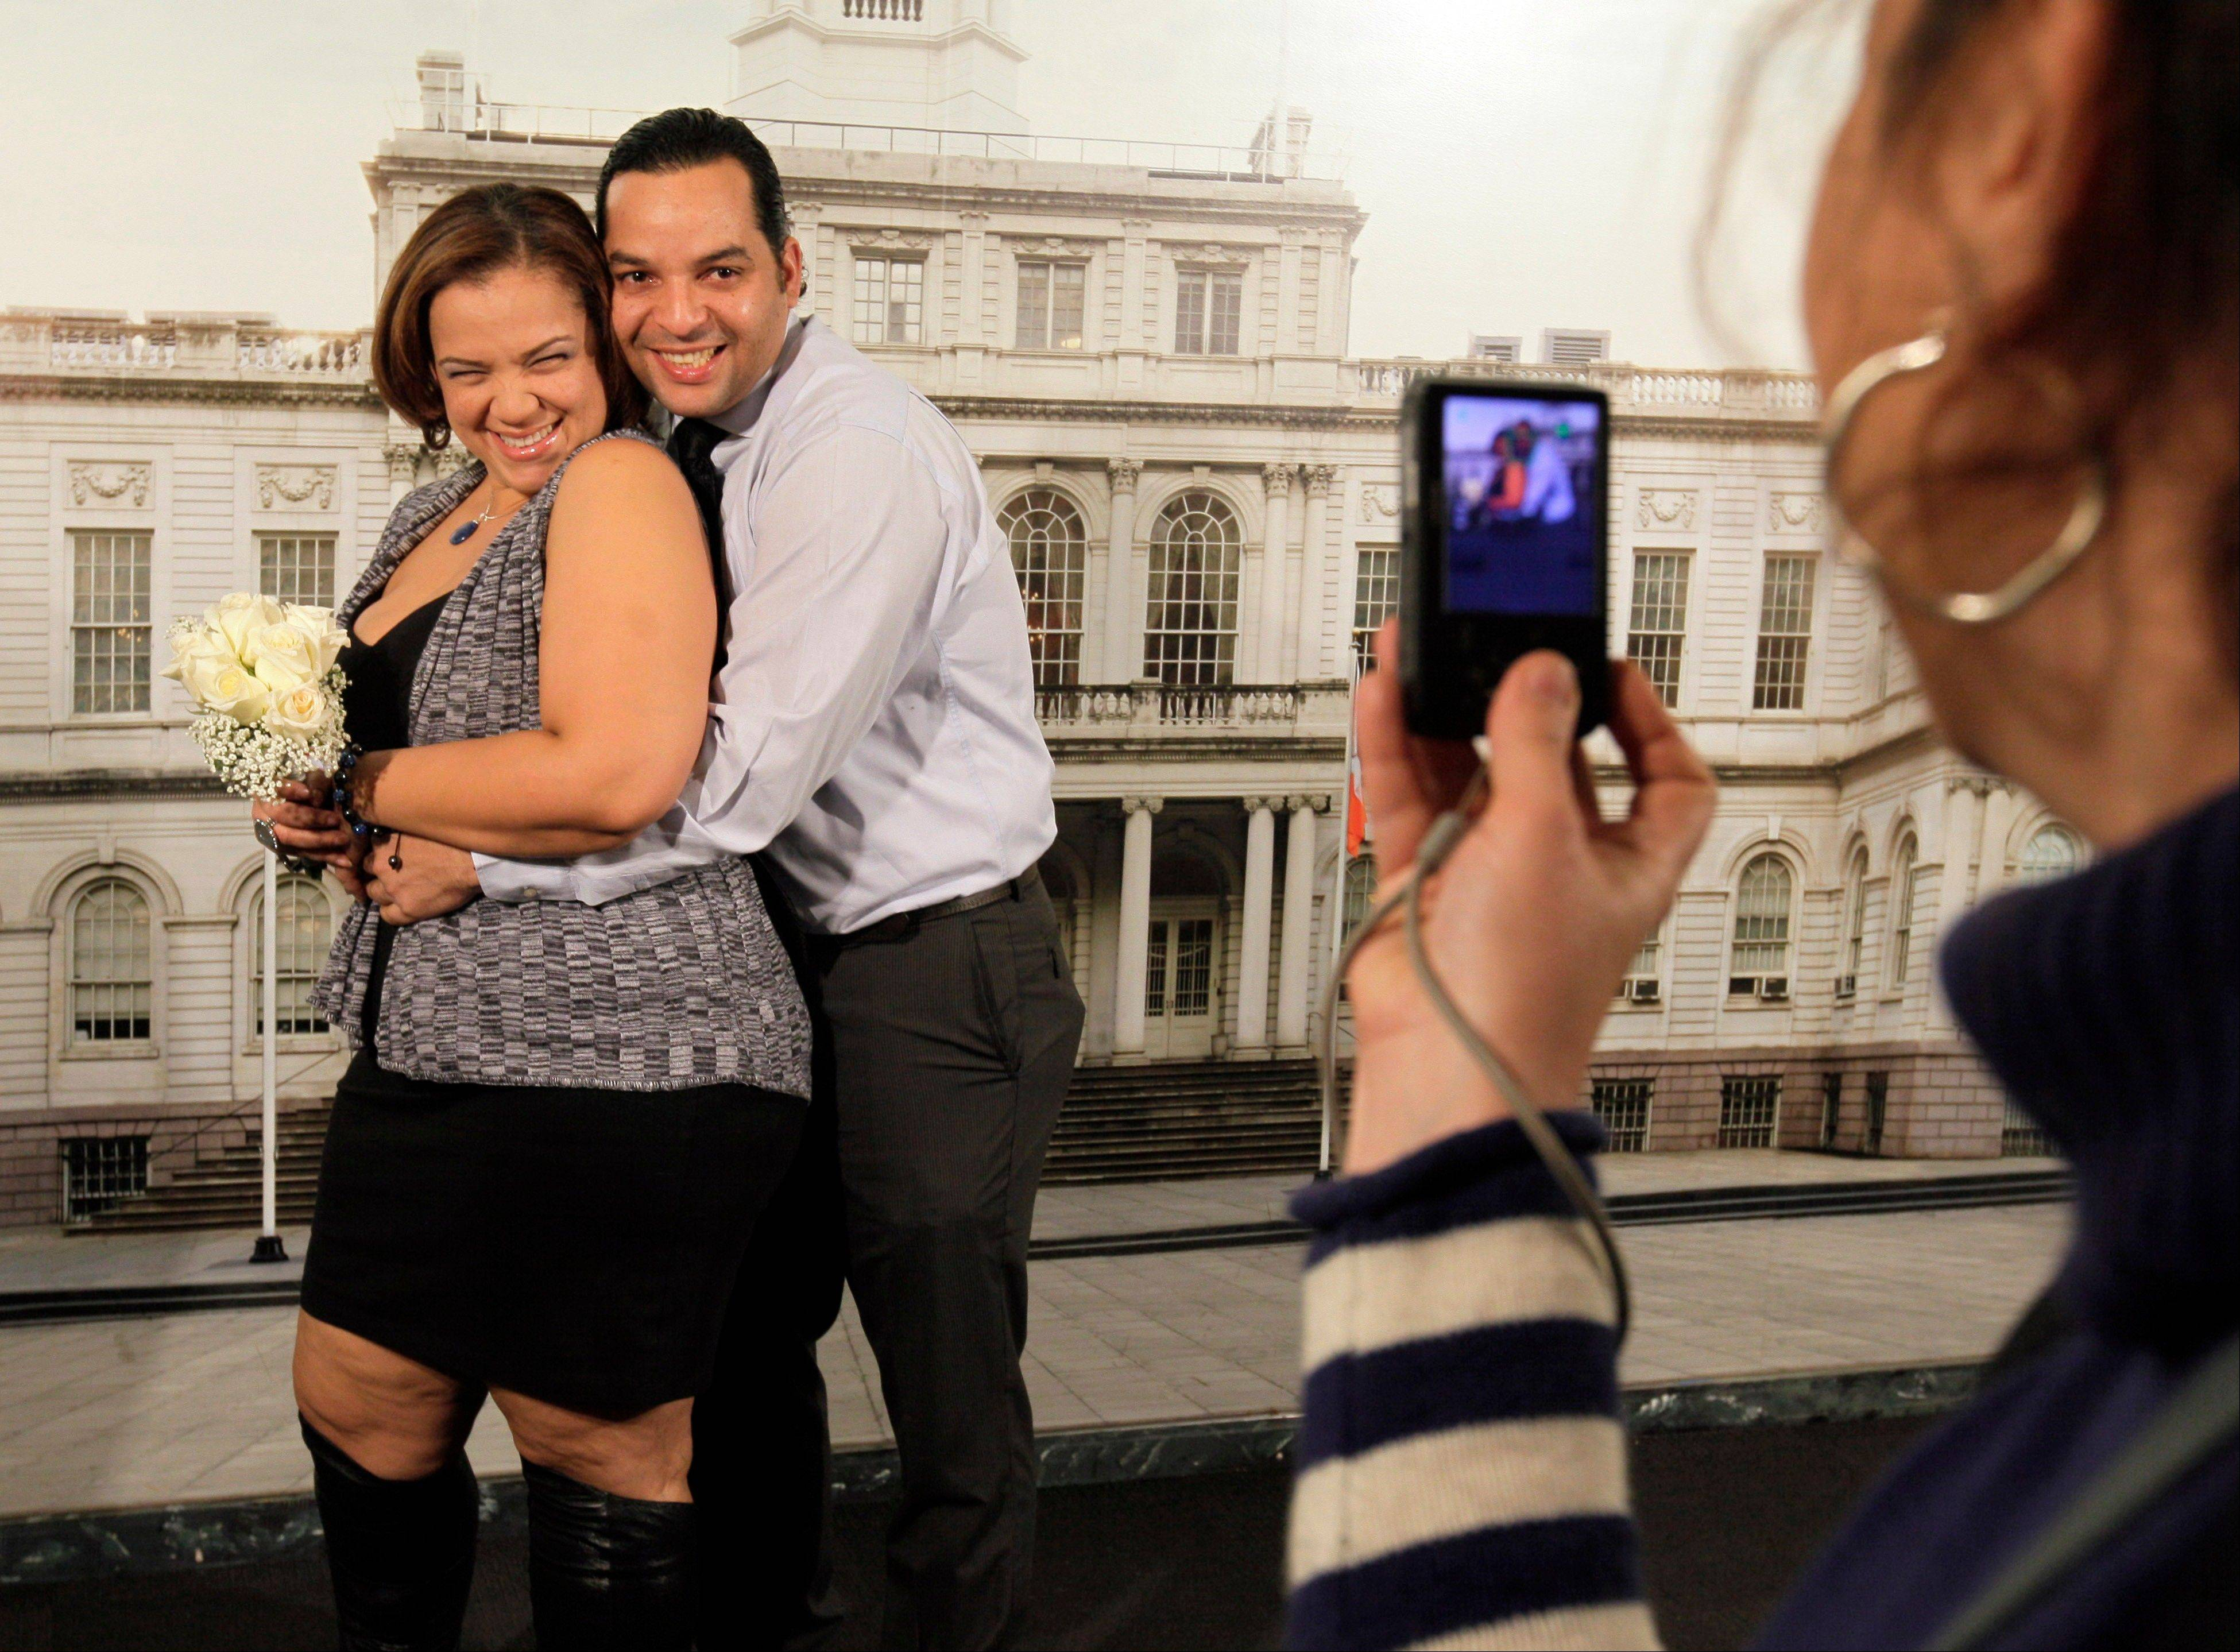 Francisco Mena, and his new wife, Carolina Mena, of the Washington Heights neighborhood of New York, pose Wednesday for photos in the Office of the City Clerk in New York after their wedding.